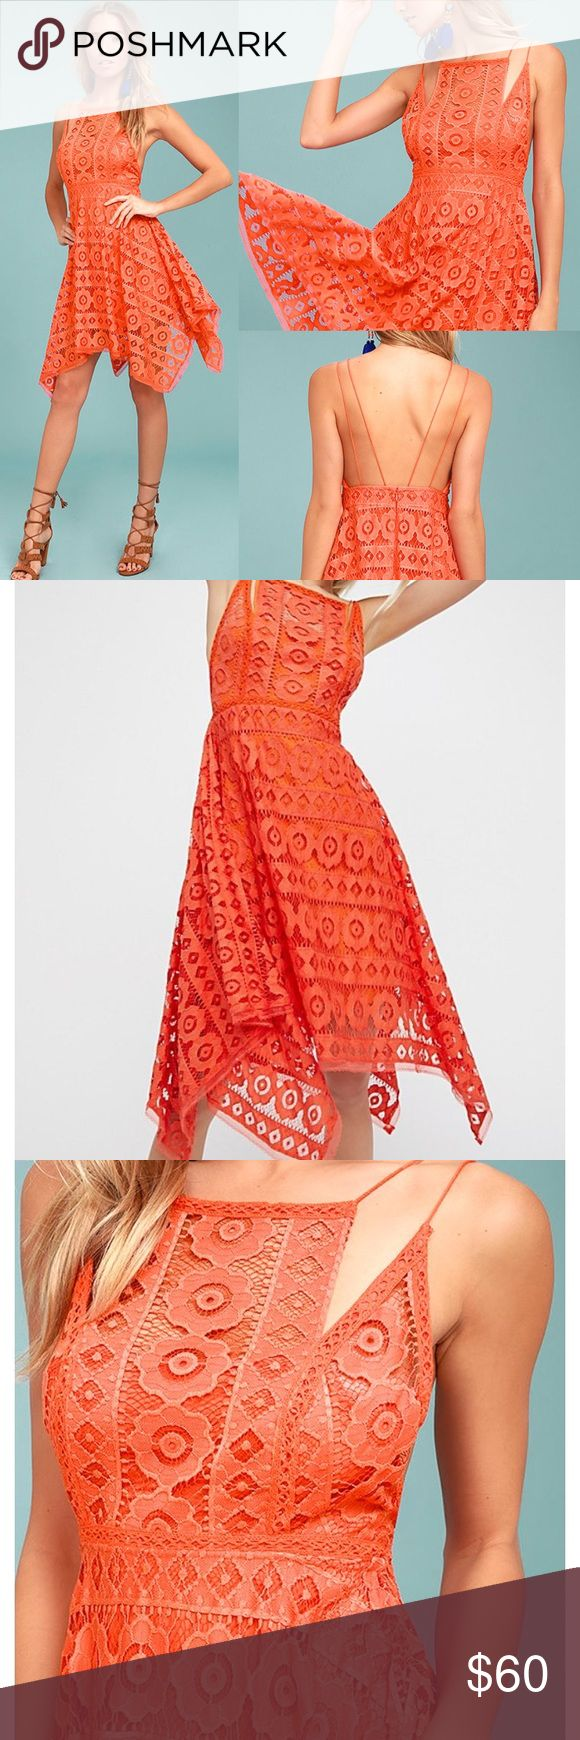 NWT Free People Just Like Honey Lace Salmon Dress Brand new with the tags perfect condition adorable on hugs in all the right places, orange salmon color, purchased at anthropology Free People Dresses